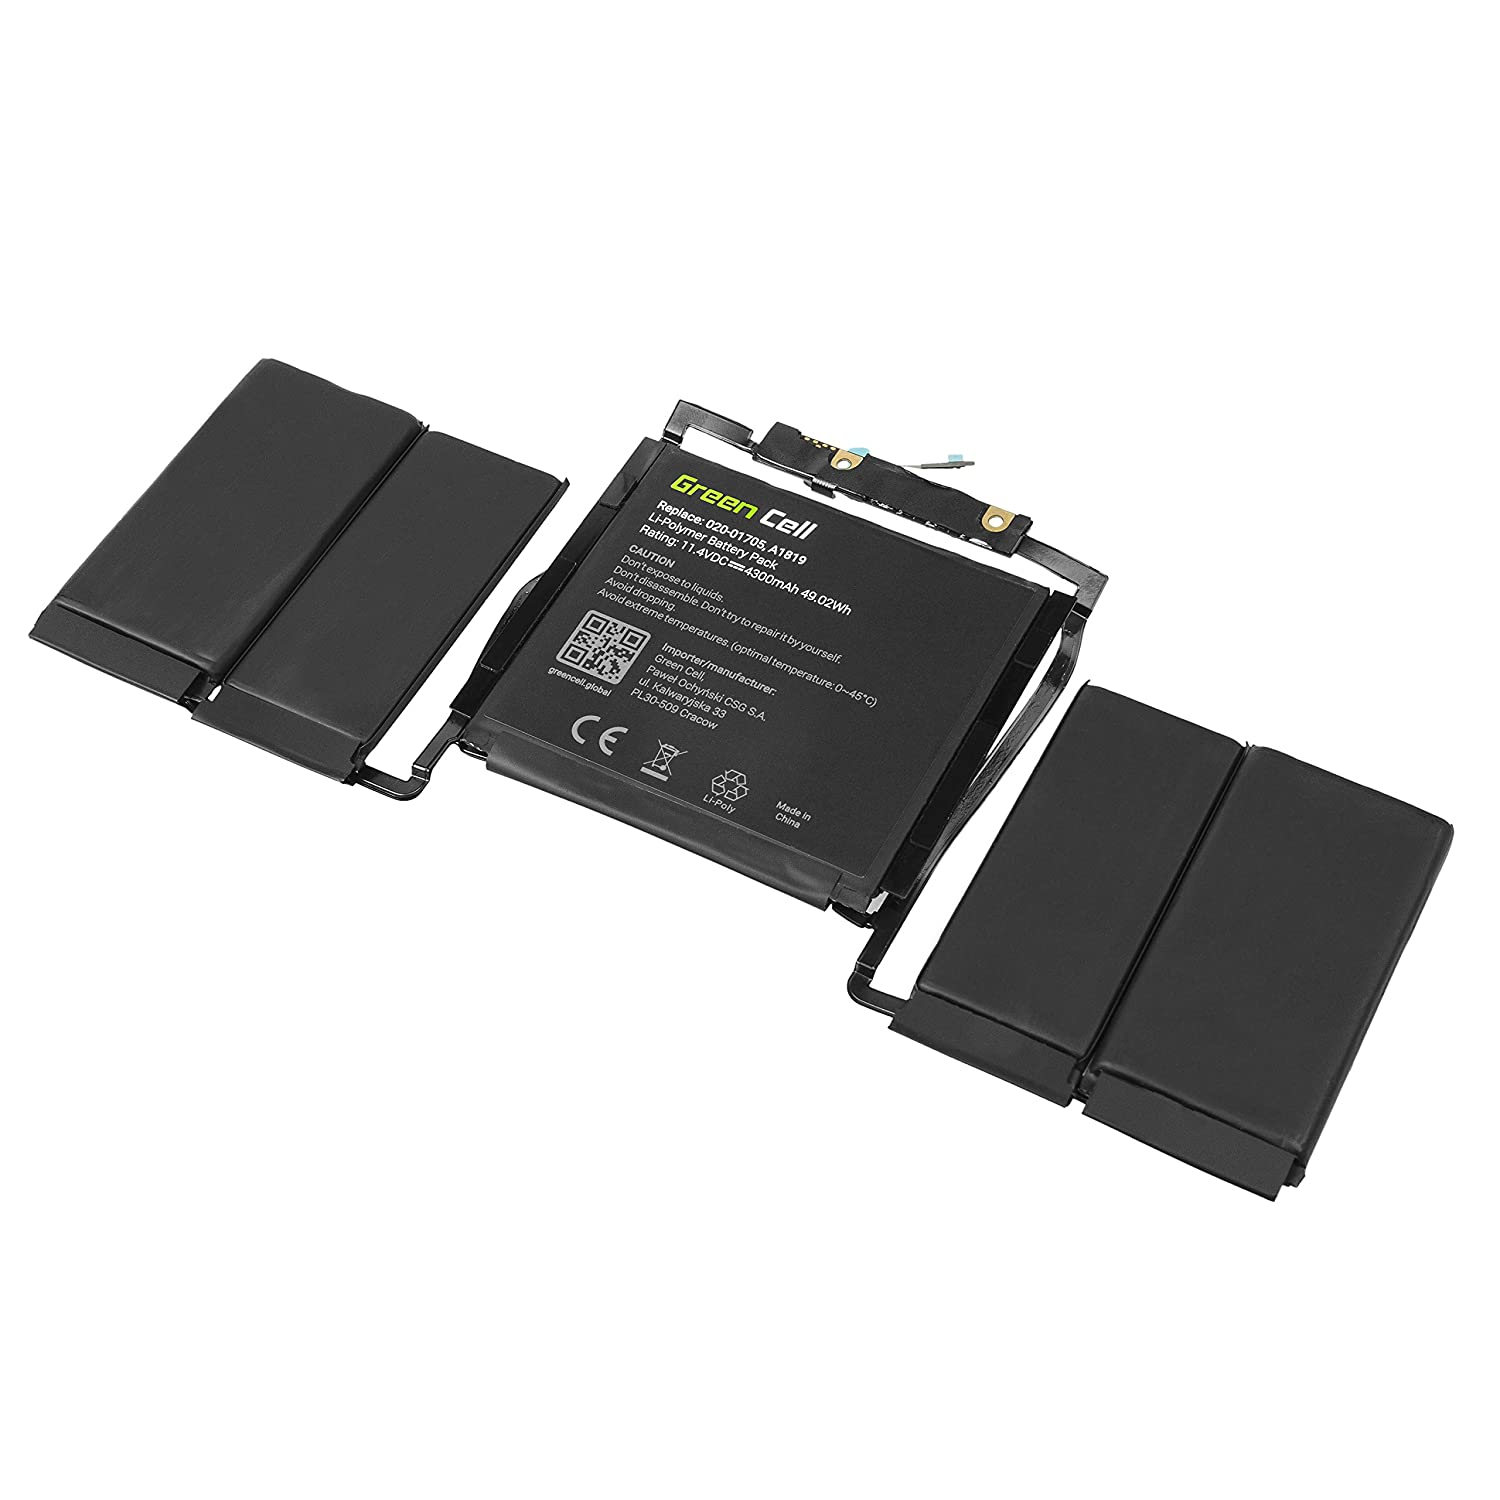 49.0Wh 11.4V Green Cell/® A1819 Laptop Battery for Apple MacBook Pro 13 A1706 Touch Bar Late 2016, Mid 2017